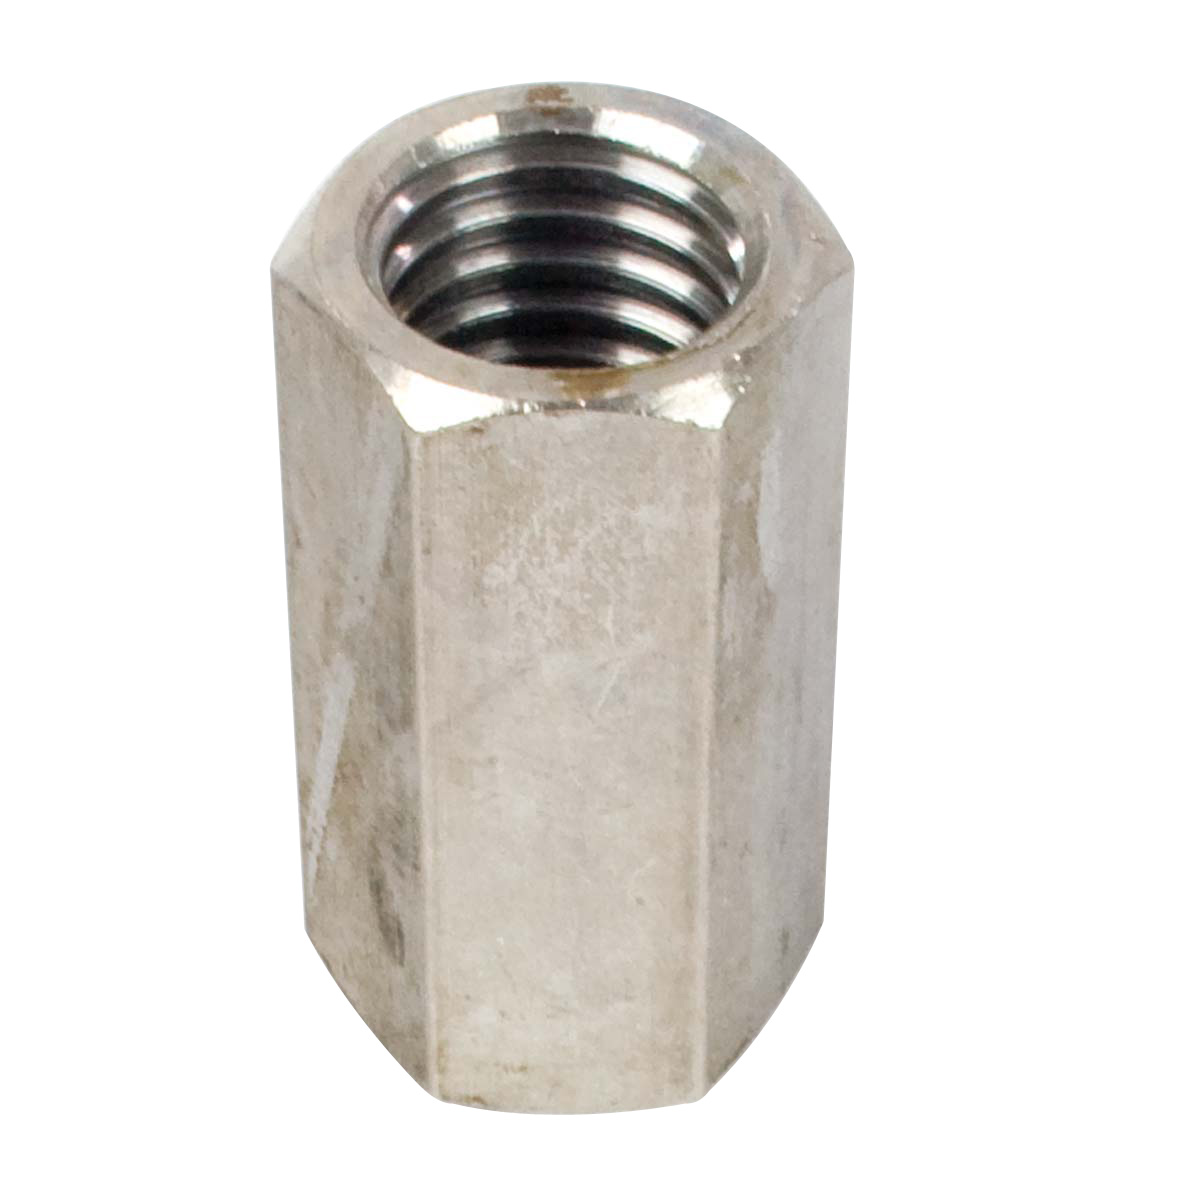 1 4 20 Stainless Steel Coupling Nut Kimball Midwest